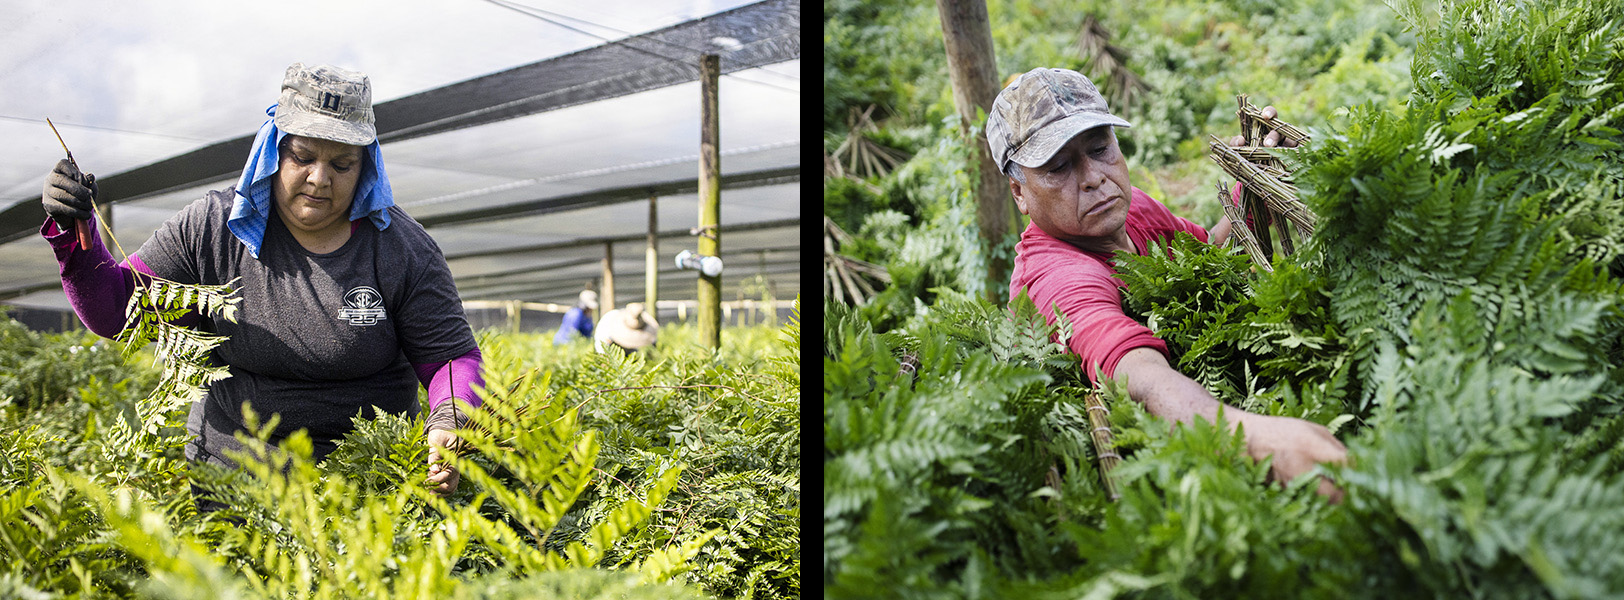 Griselda Lomeli, left, and Jesus Estrada pick ferns in Pierson, Florida.